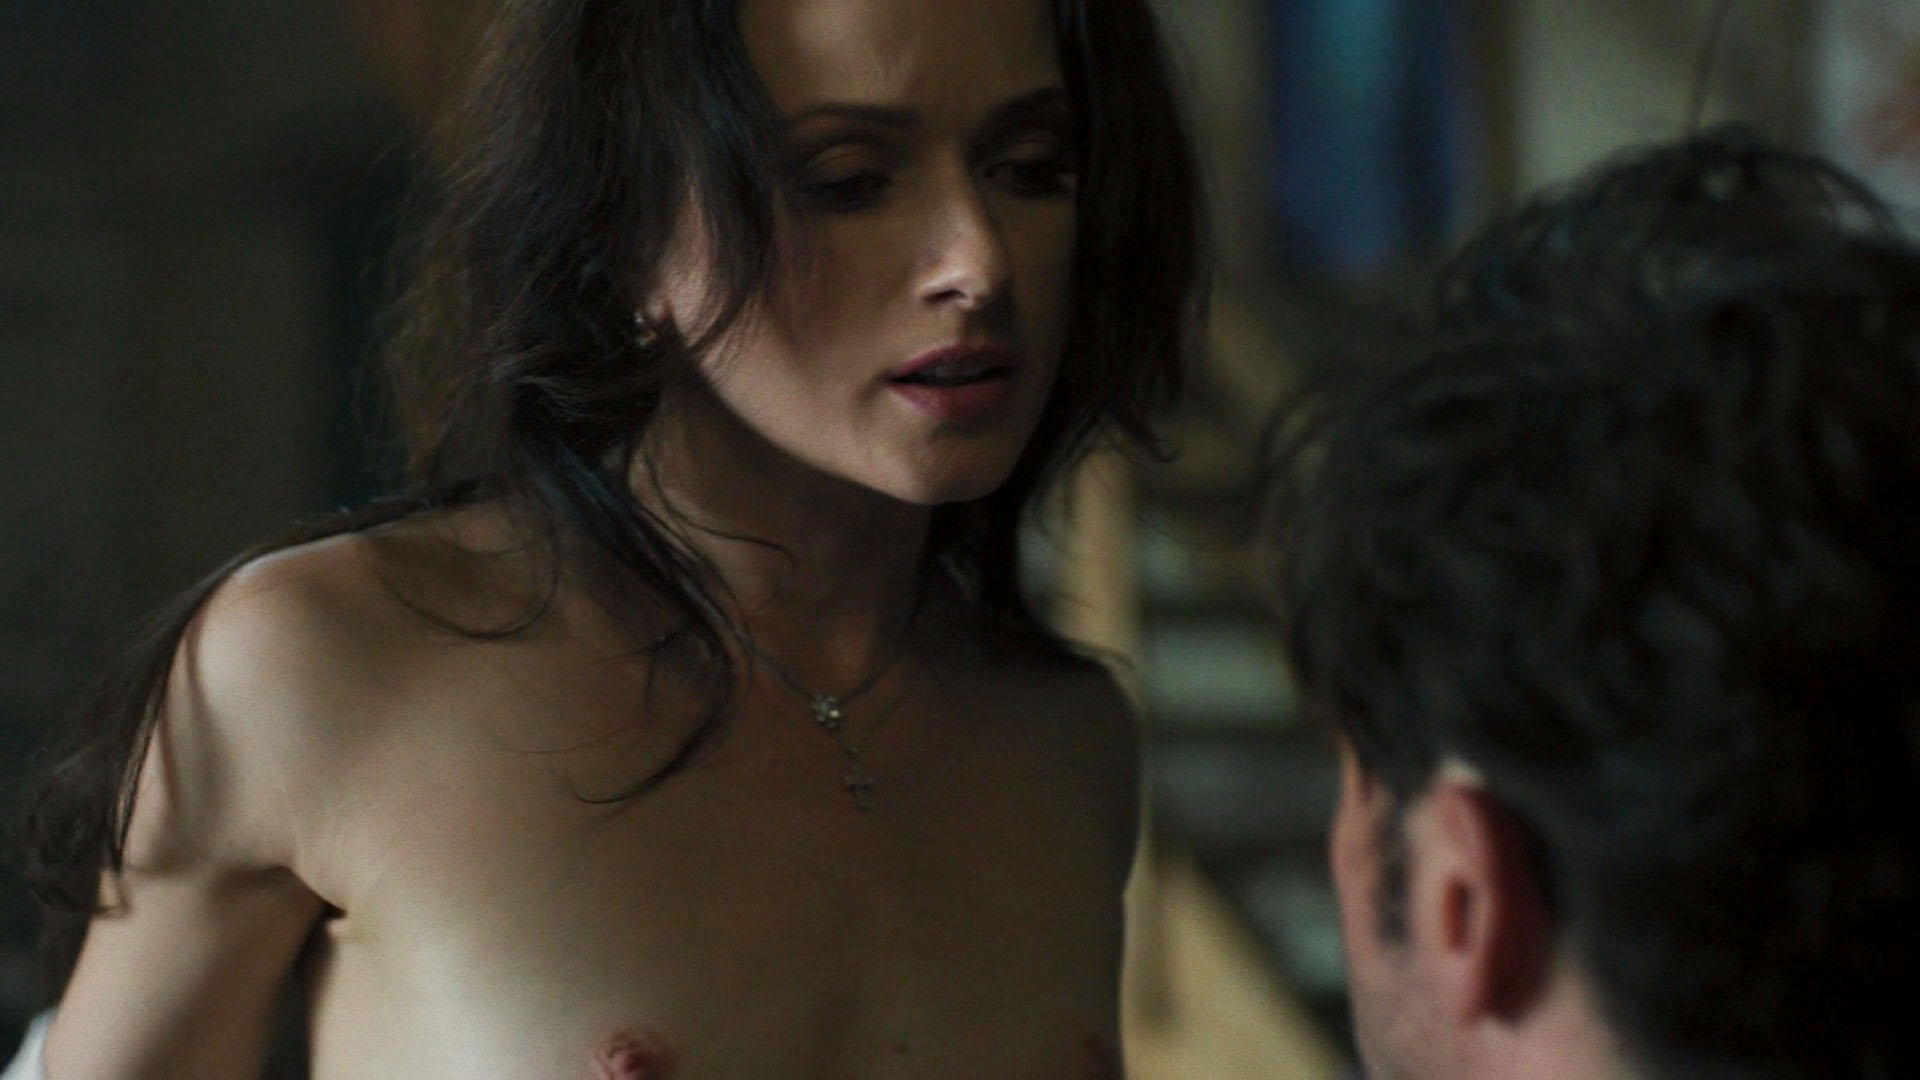 Irina Dvorovenko – Flesh and Bone s01e07 (2015) HD 1080p